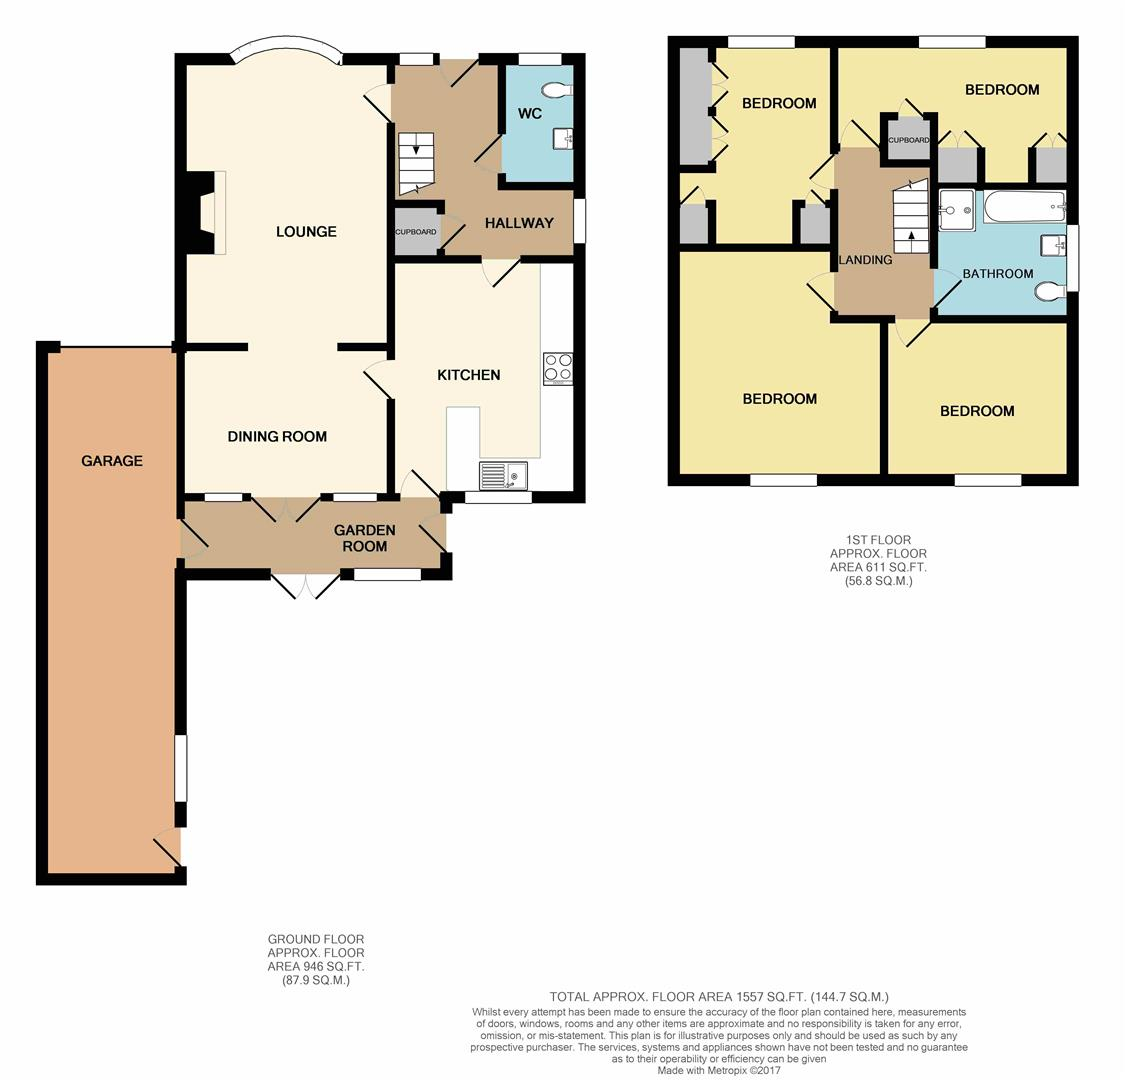 Property For Sale In Wrea Green